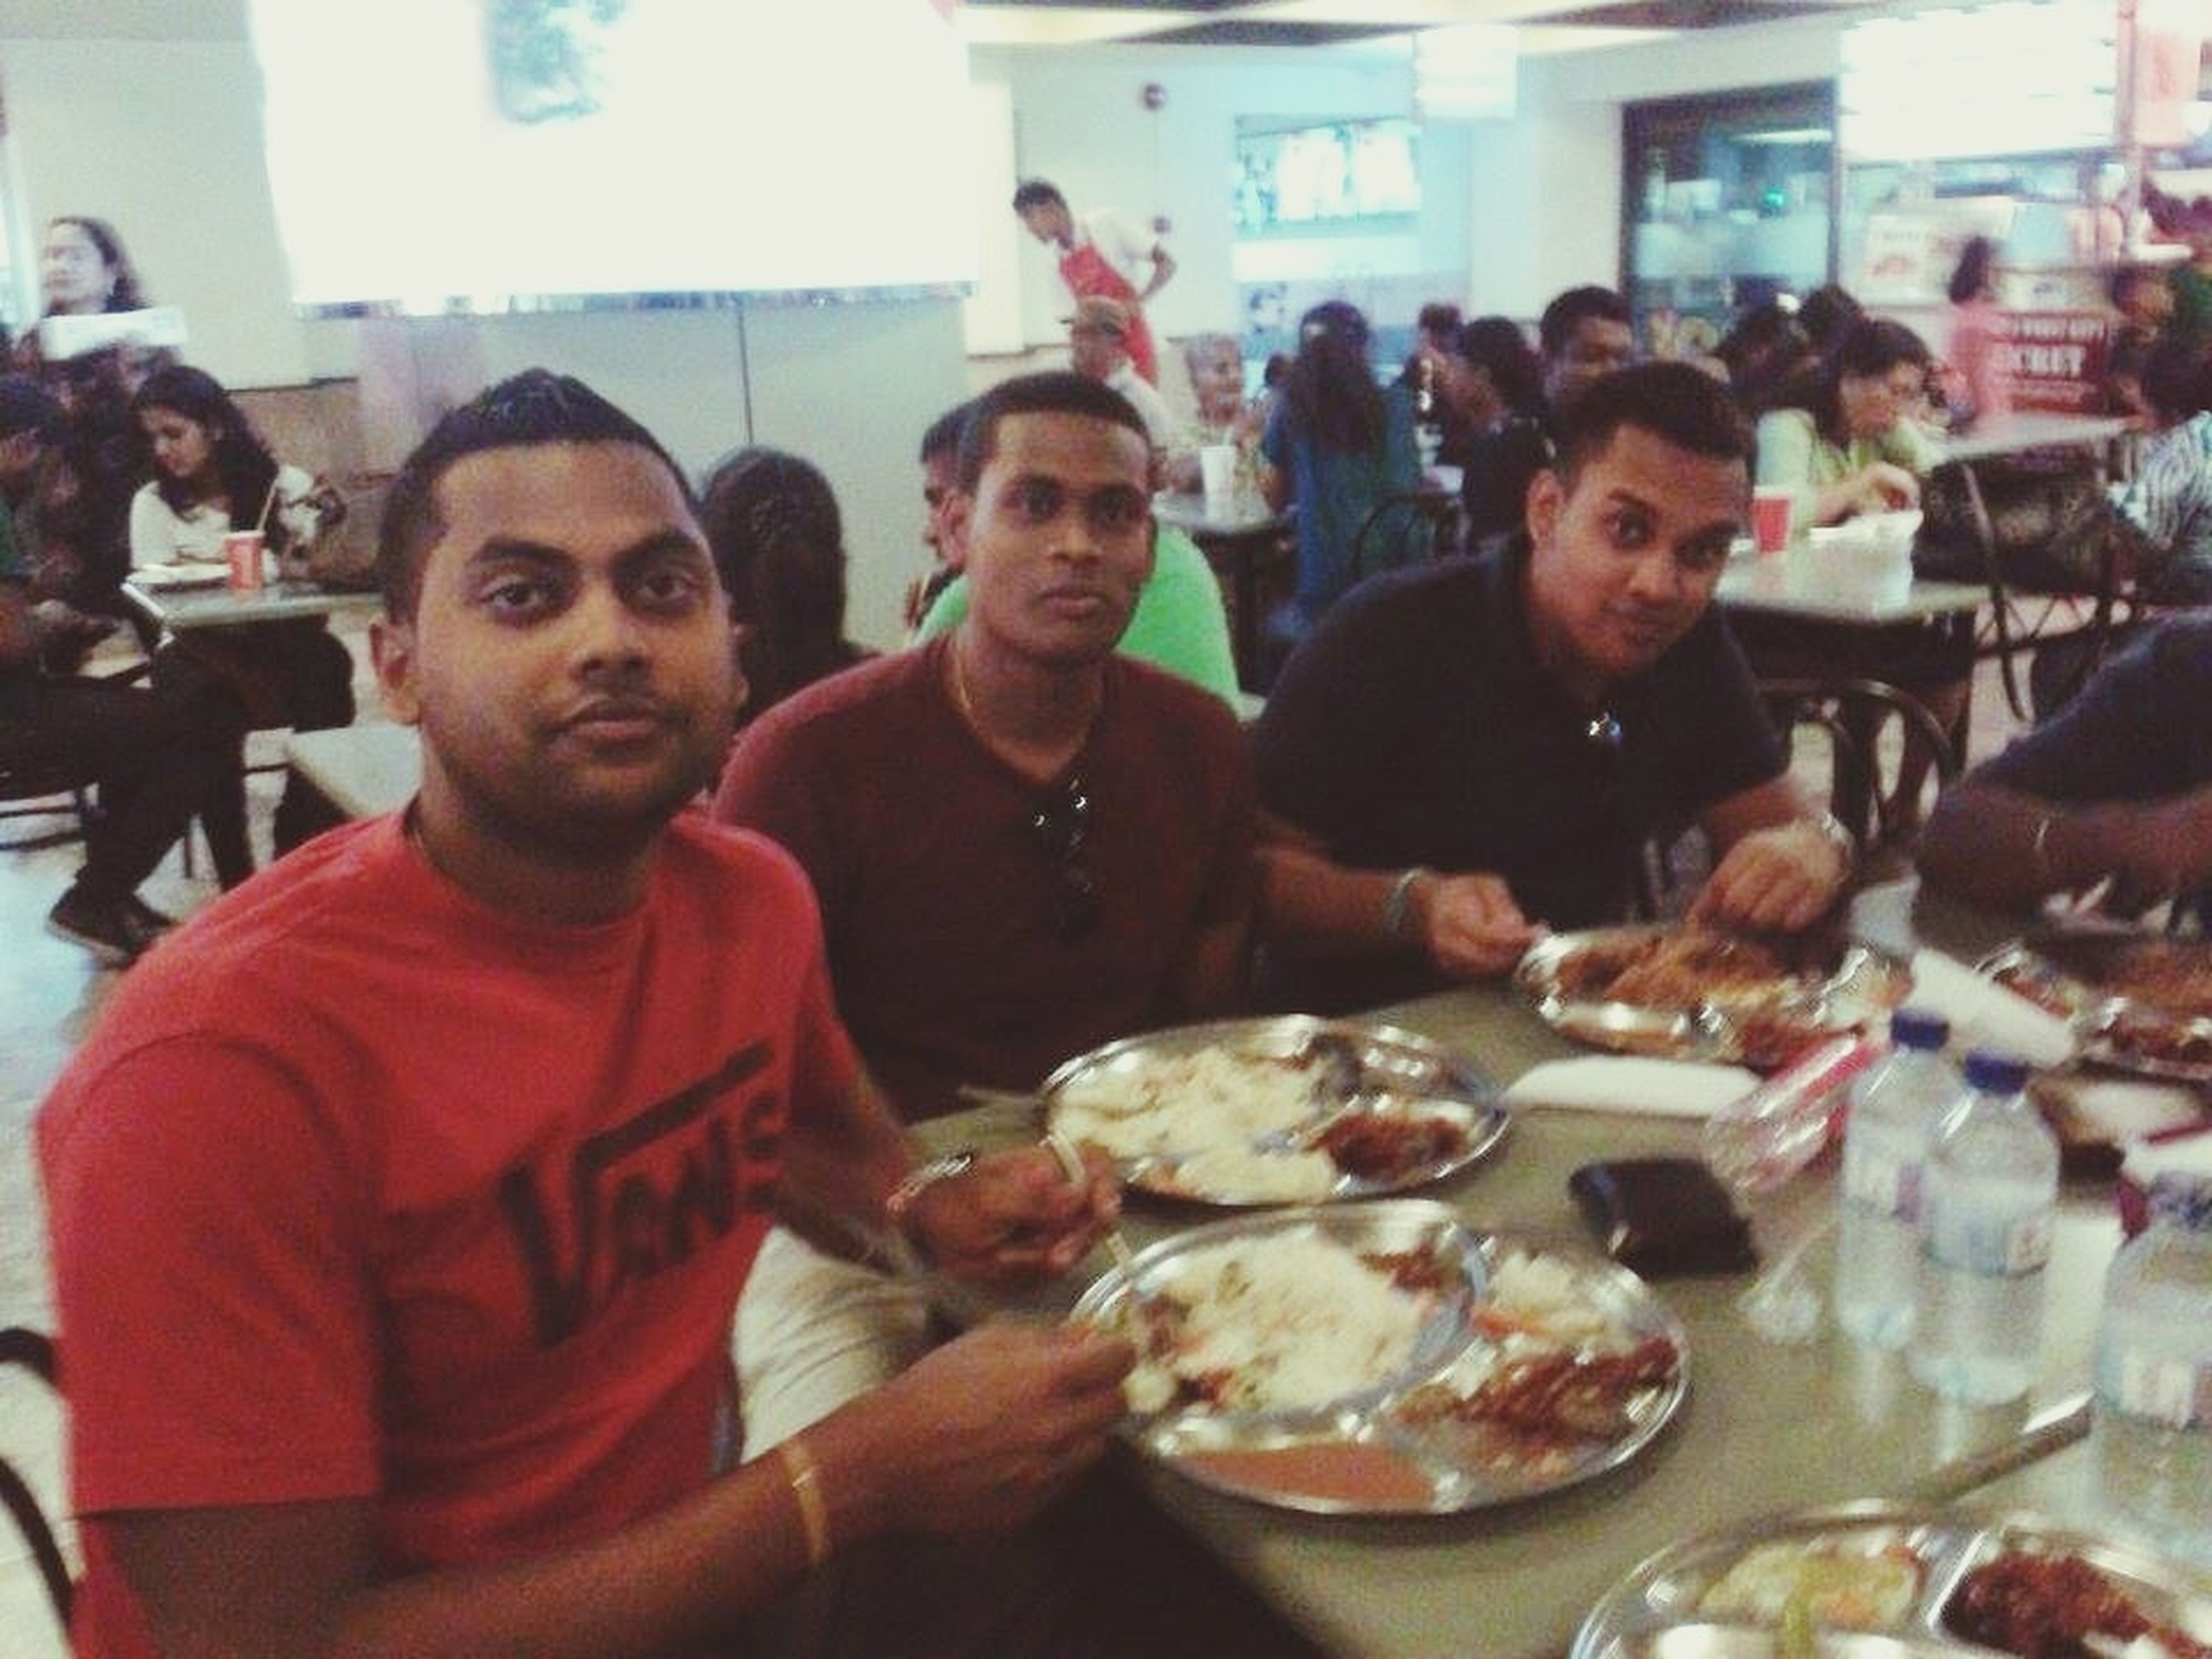 lifestyles, indoors, leisure activity, casual clothing, food and drink, portrait, person, togetherness, looking at camera, young men, sitting, men, bonding, happiness, front view, smiling, restaurant